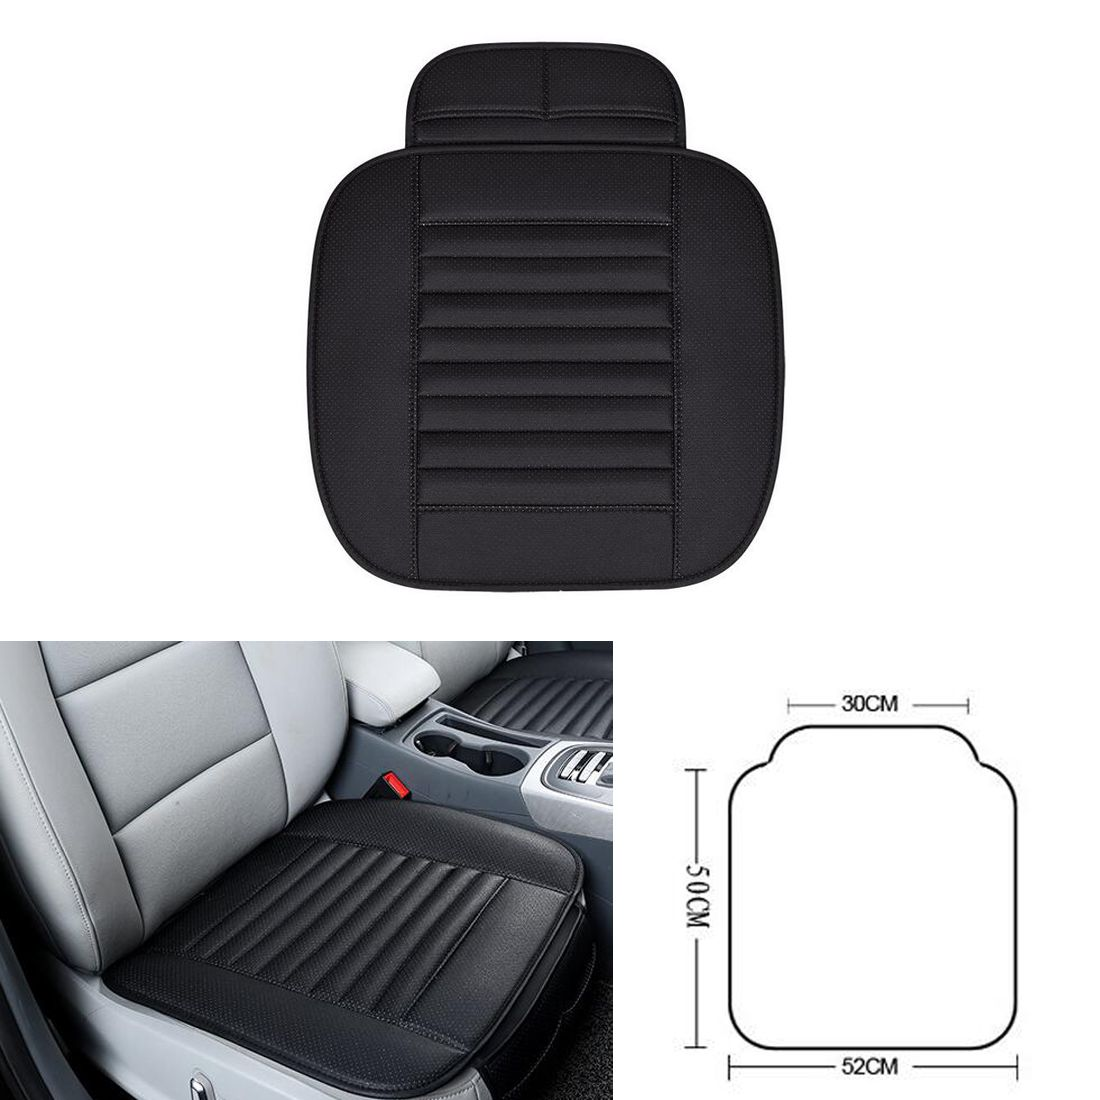 Dongzhen 1X Car Seat Covers Protector Driver Chair Pad Breathable Car Interior Seat Cover Pads Seat Cushion Auto Accessories